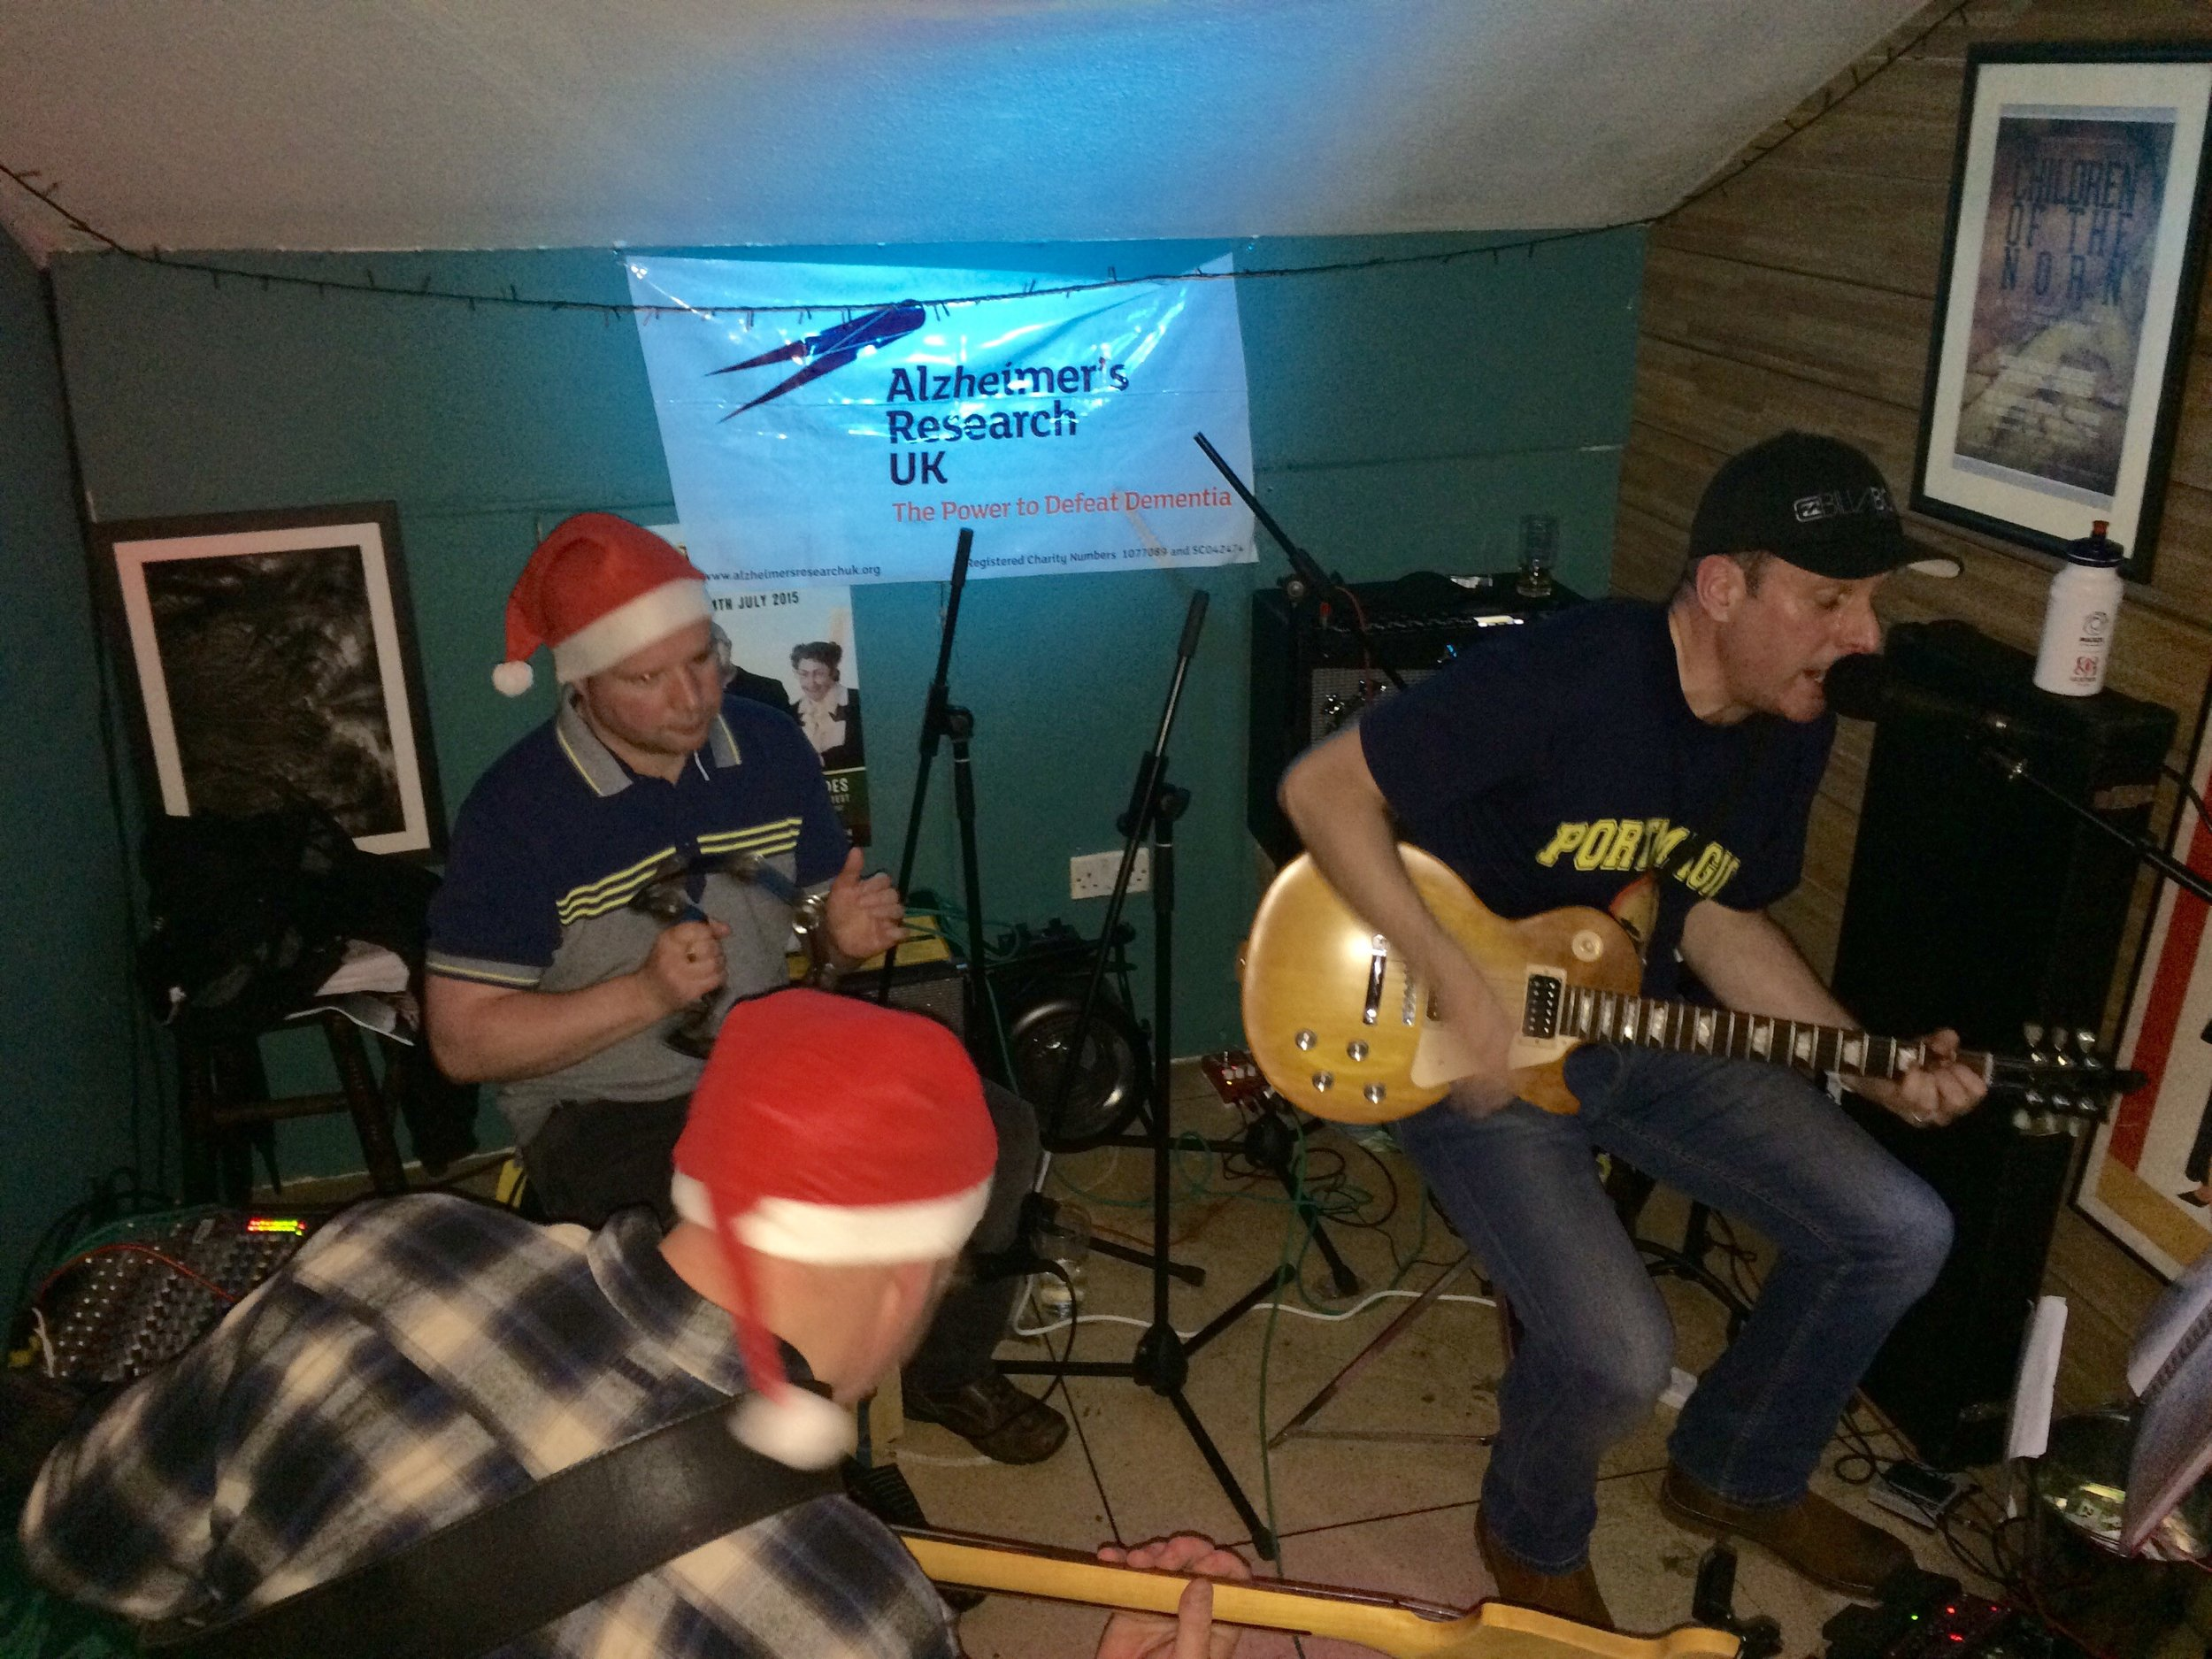 Rolling back time: From right to left – Jonny Lennox, Peter Jameson, and Paul Beattie performing as The Fix after 25 years away